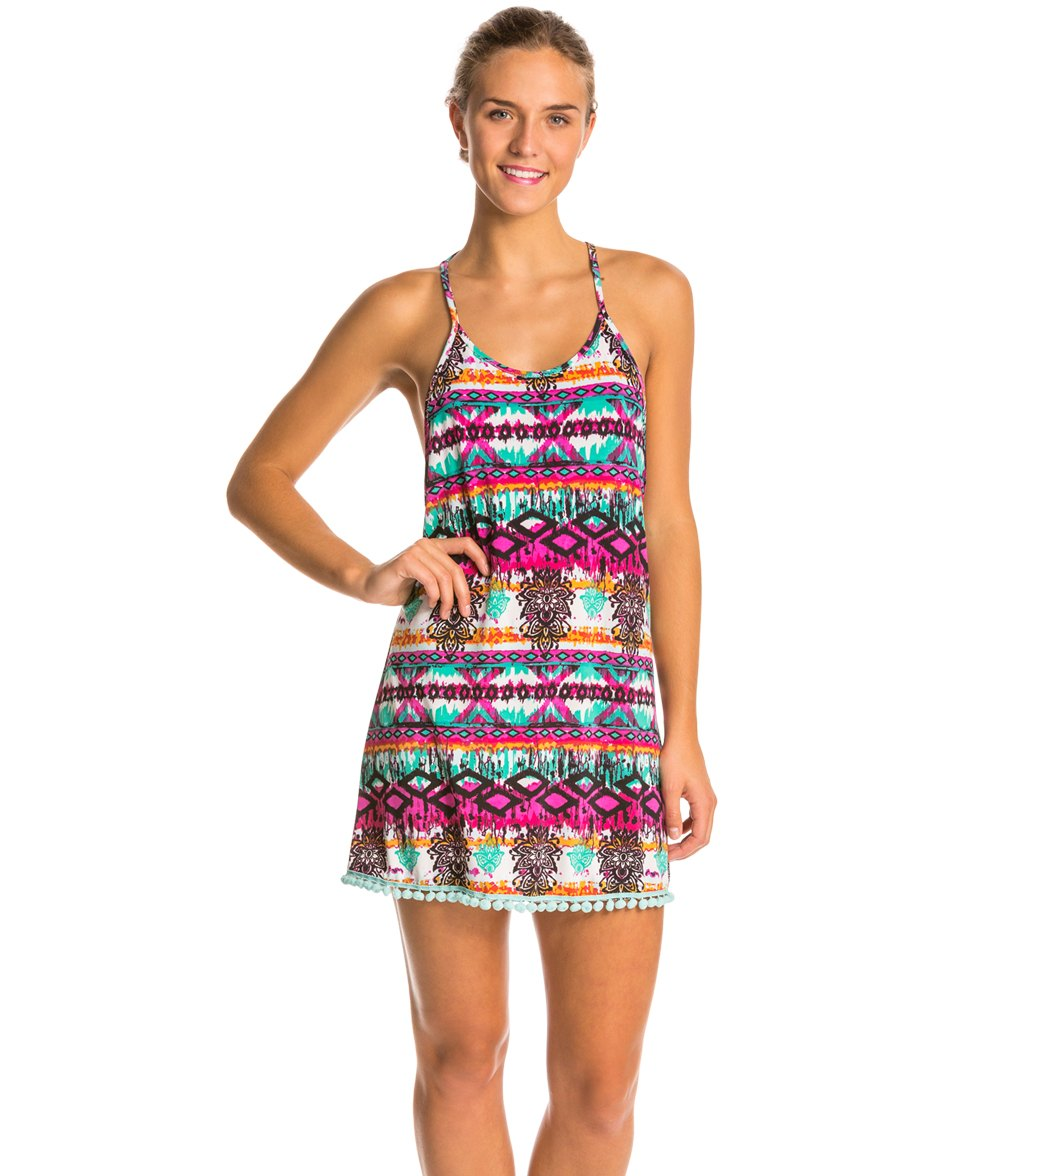 lucy love paradise beach pool party dress at swimoutlet